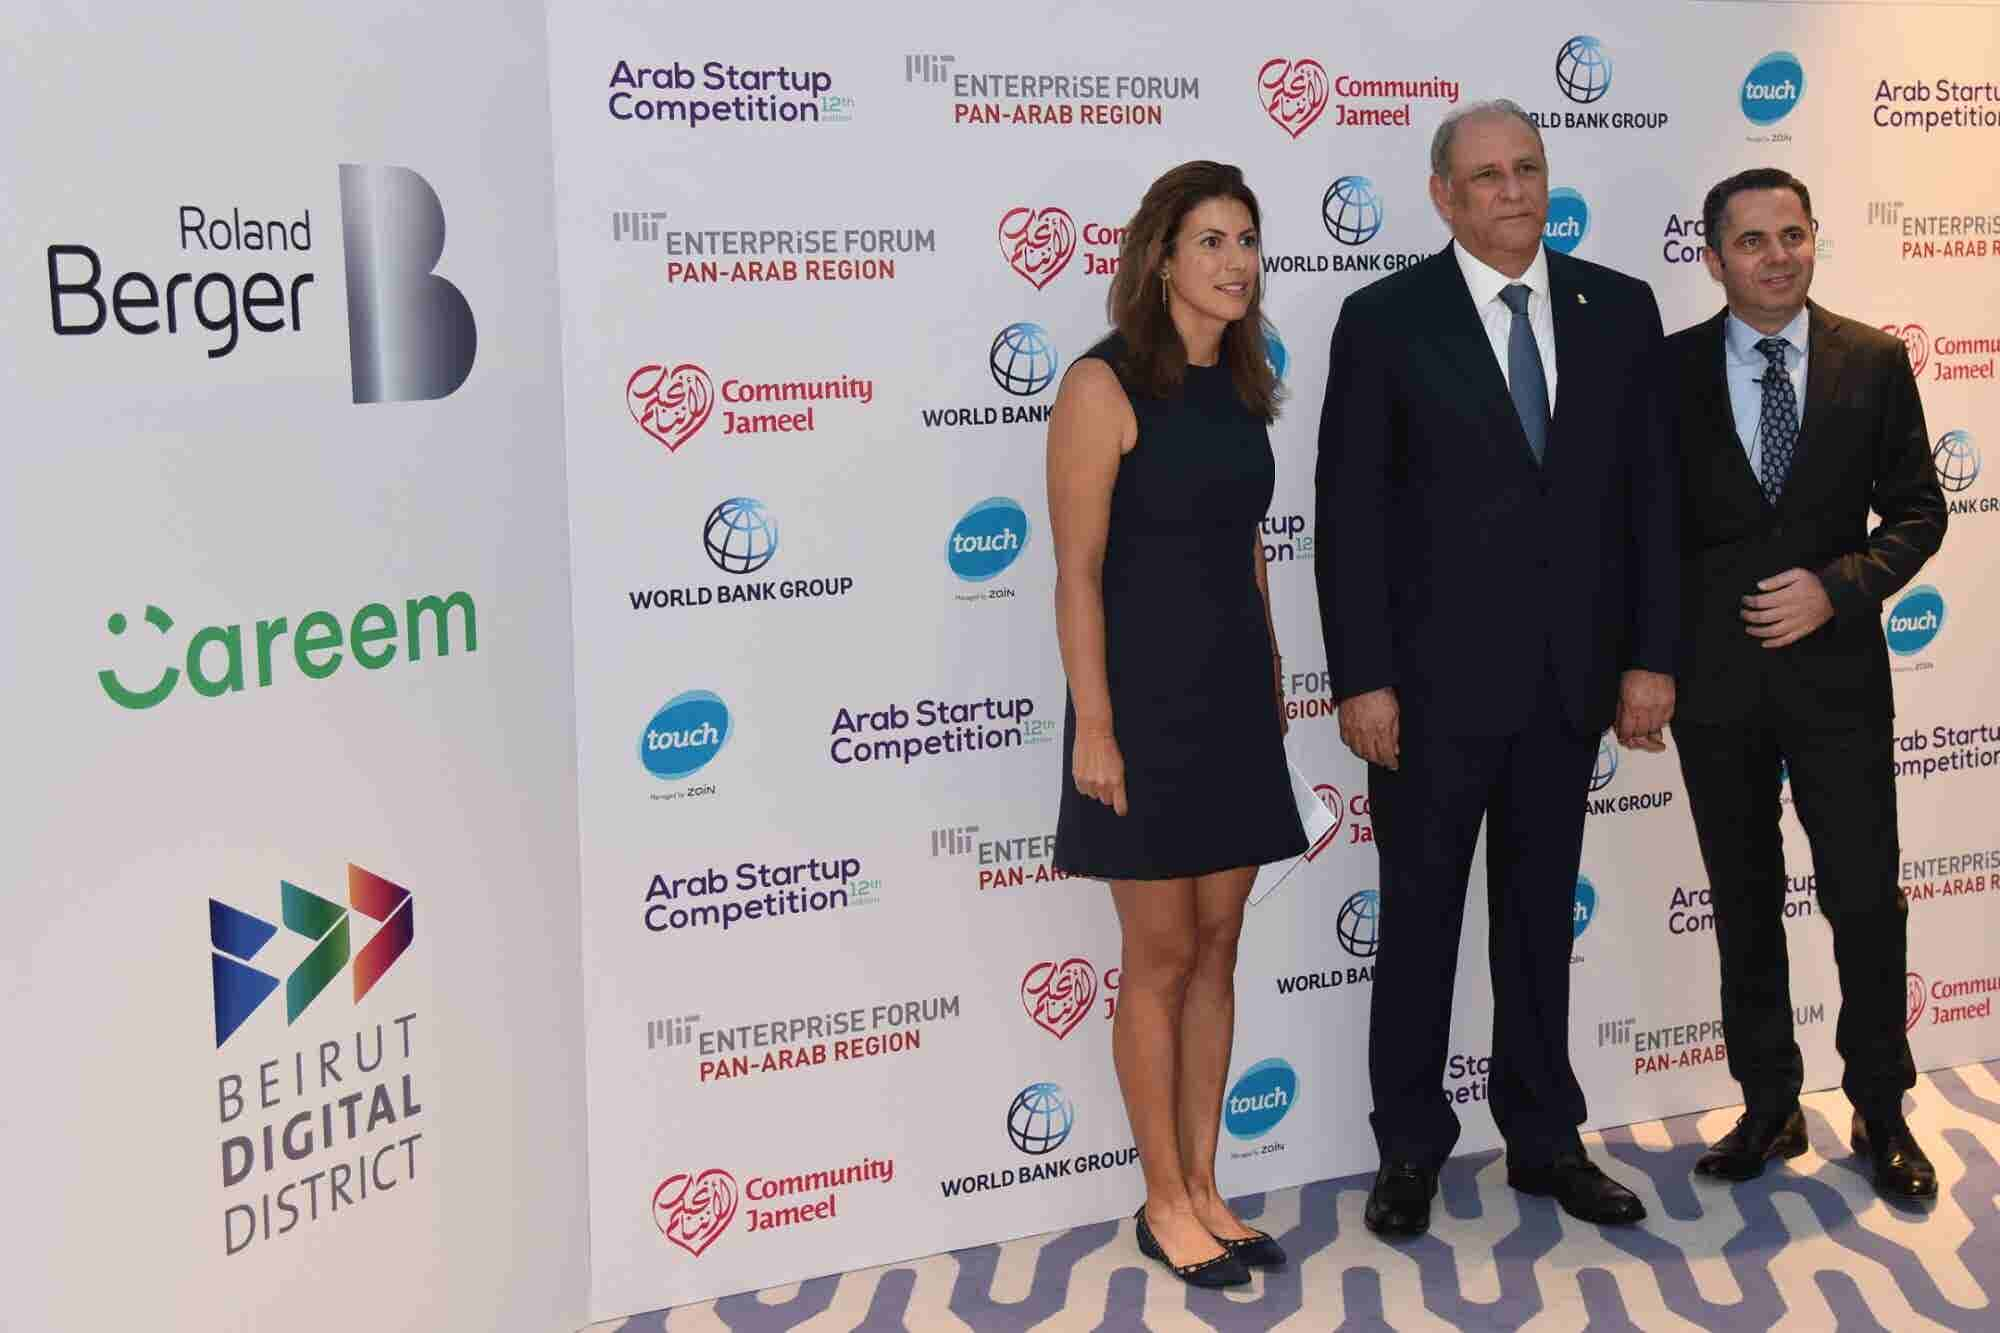 MIT Enterprise Forum Pan Arab Invites Applications for Its 12th Arab Startup Competition